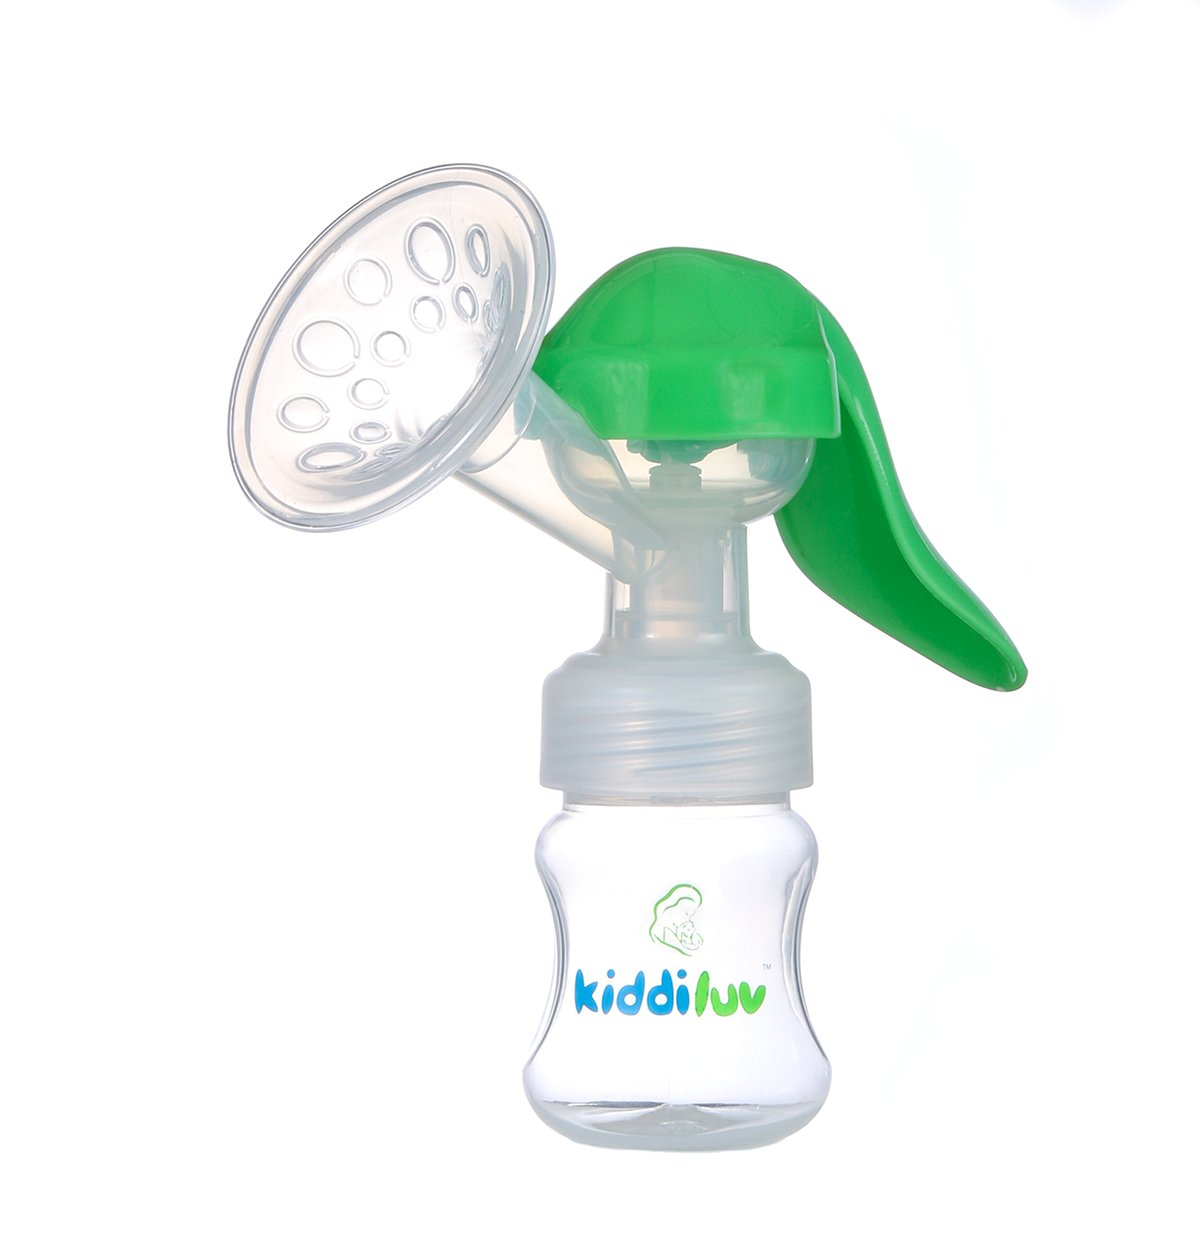 Kiddiluv Manual Breast Pump with Baby Bottle (Single) Portable, Travel Friendly, Handheld Breastfeeding Kit | Hypoallergenic Soft Silicone Breast Shield | Gentle, Efficient Suction